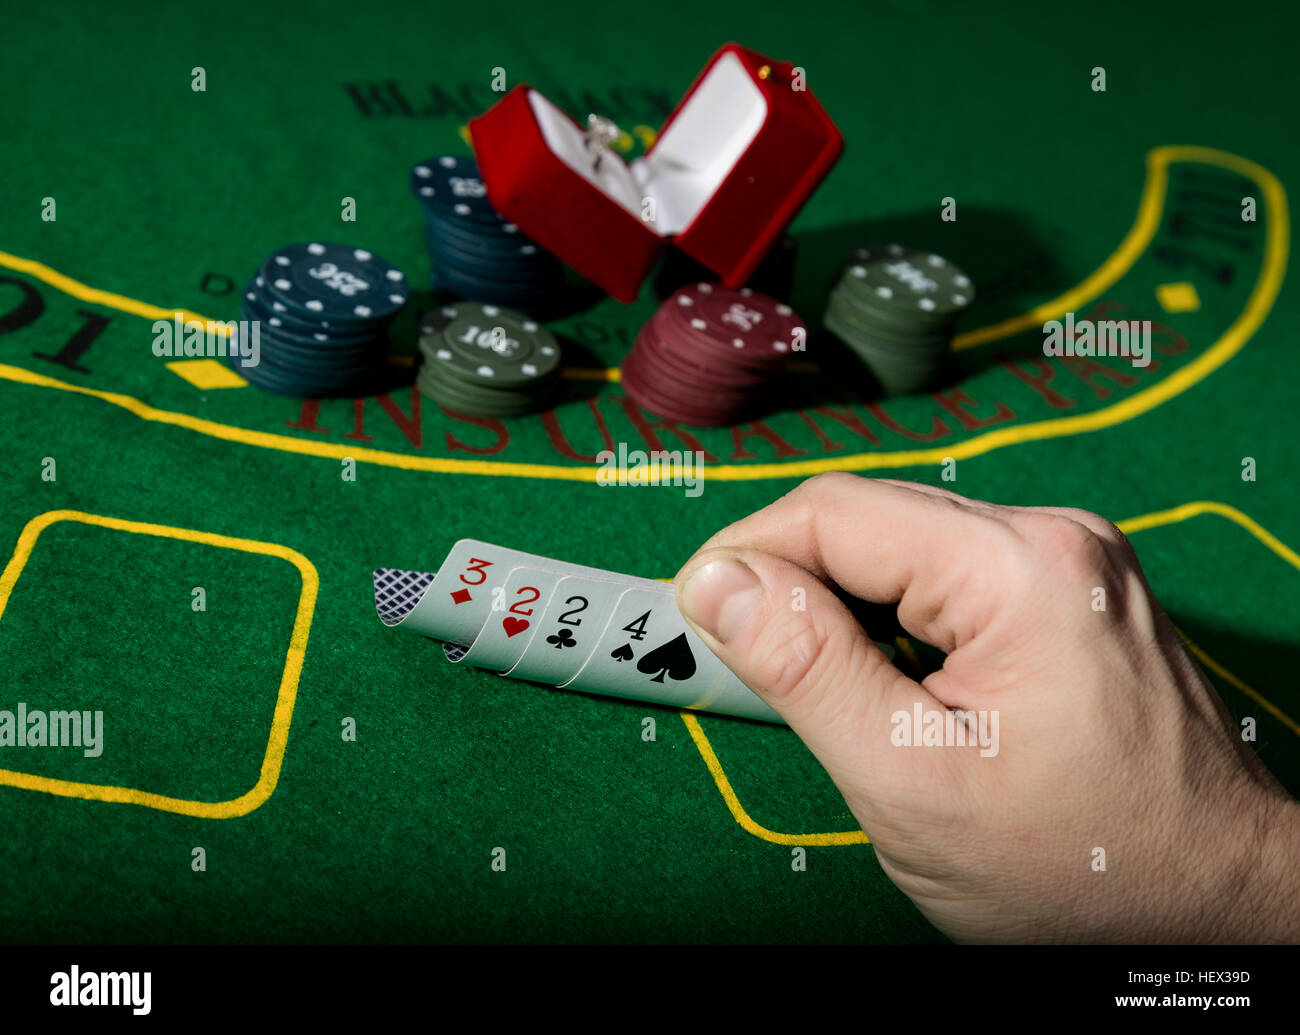 Poker table background - Stock Photo Casino Chips And A Precious Ring On Green Poker Table Background Man Holding Losing Combination Of Cards